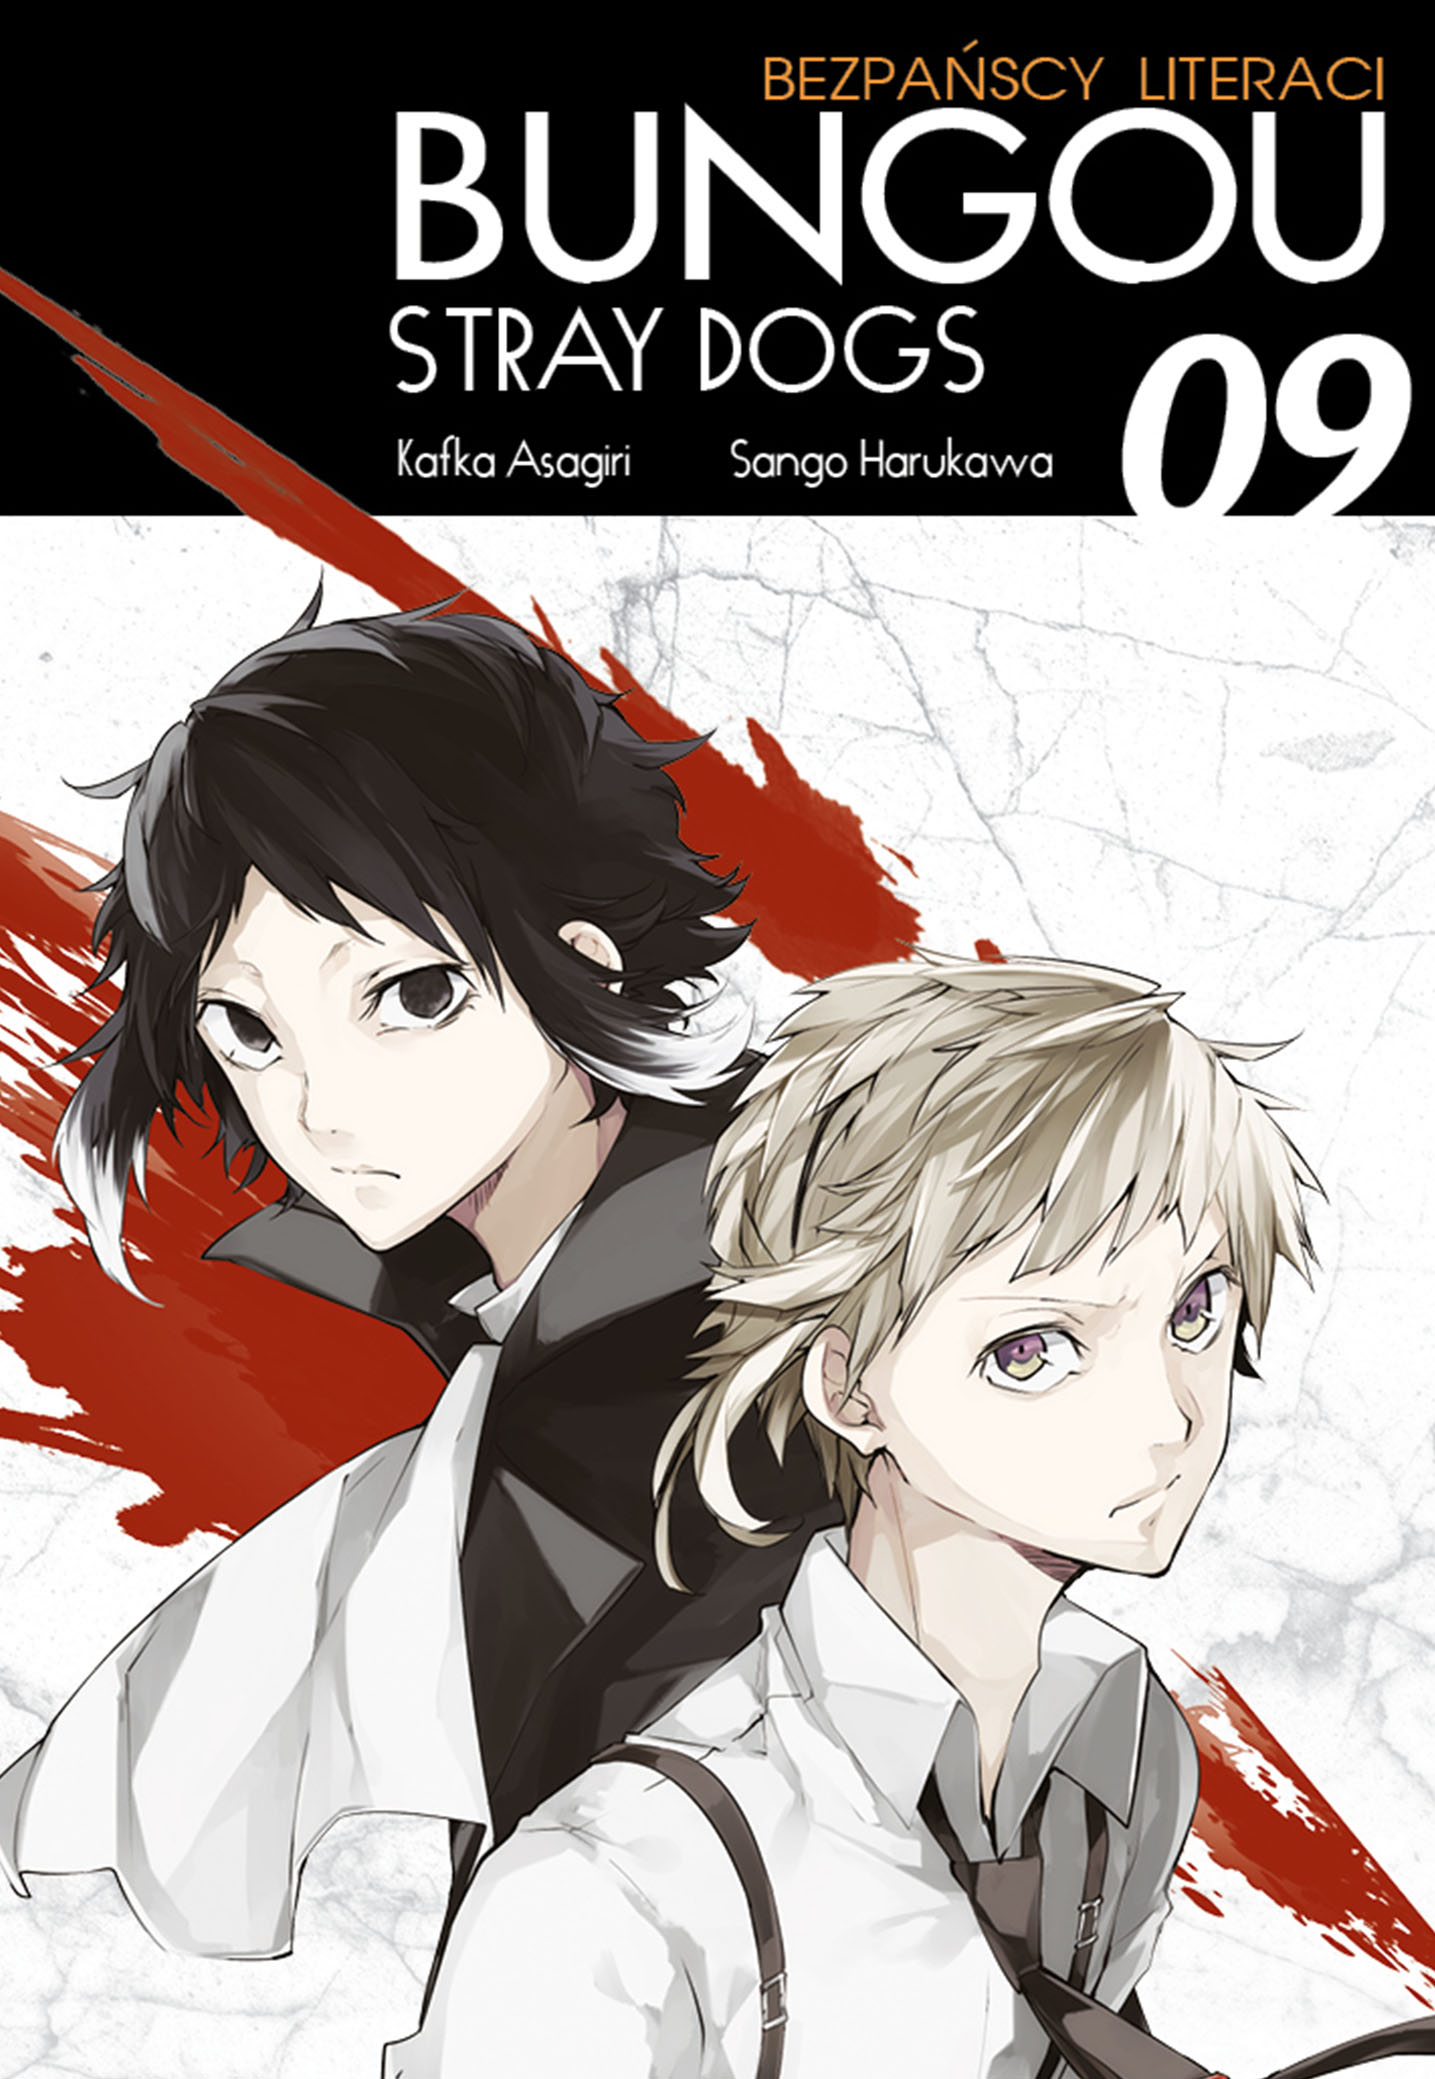 Bungou Stray Dogs - Bezpańscy Literaci: tom 9